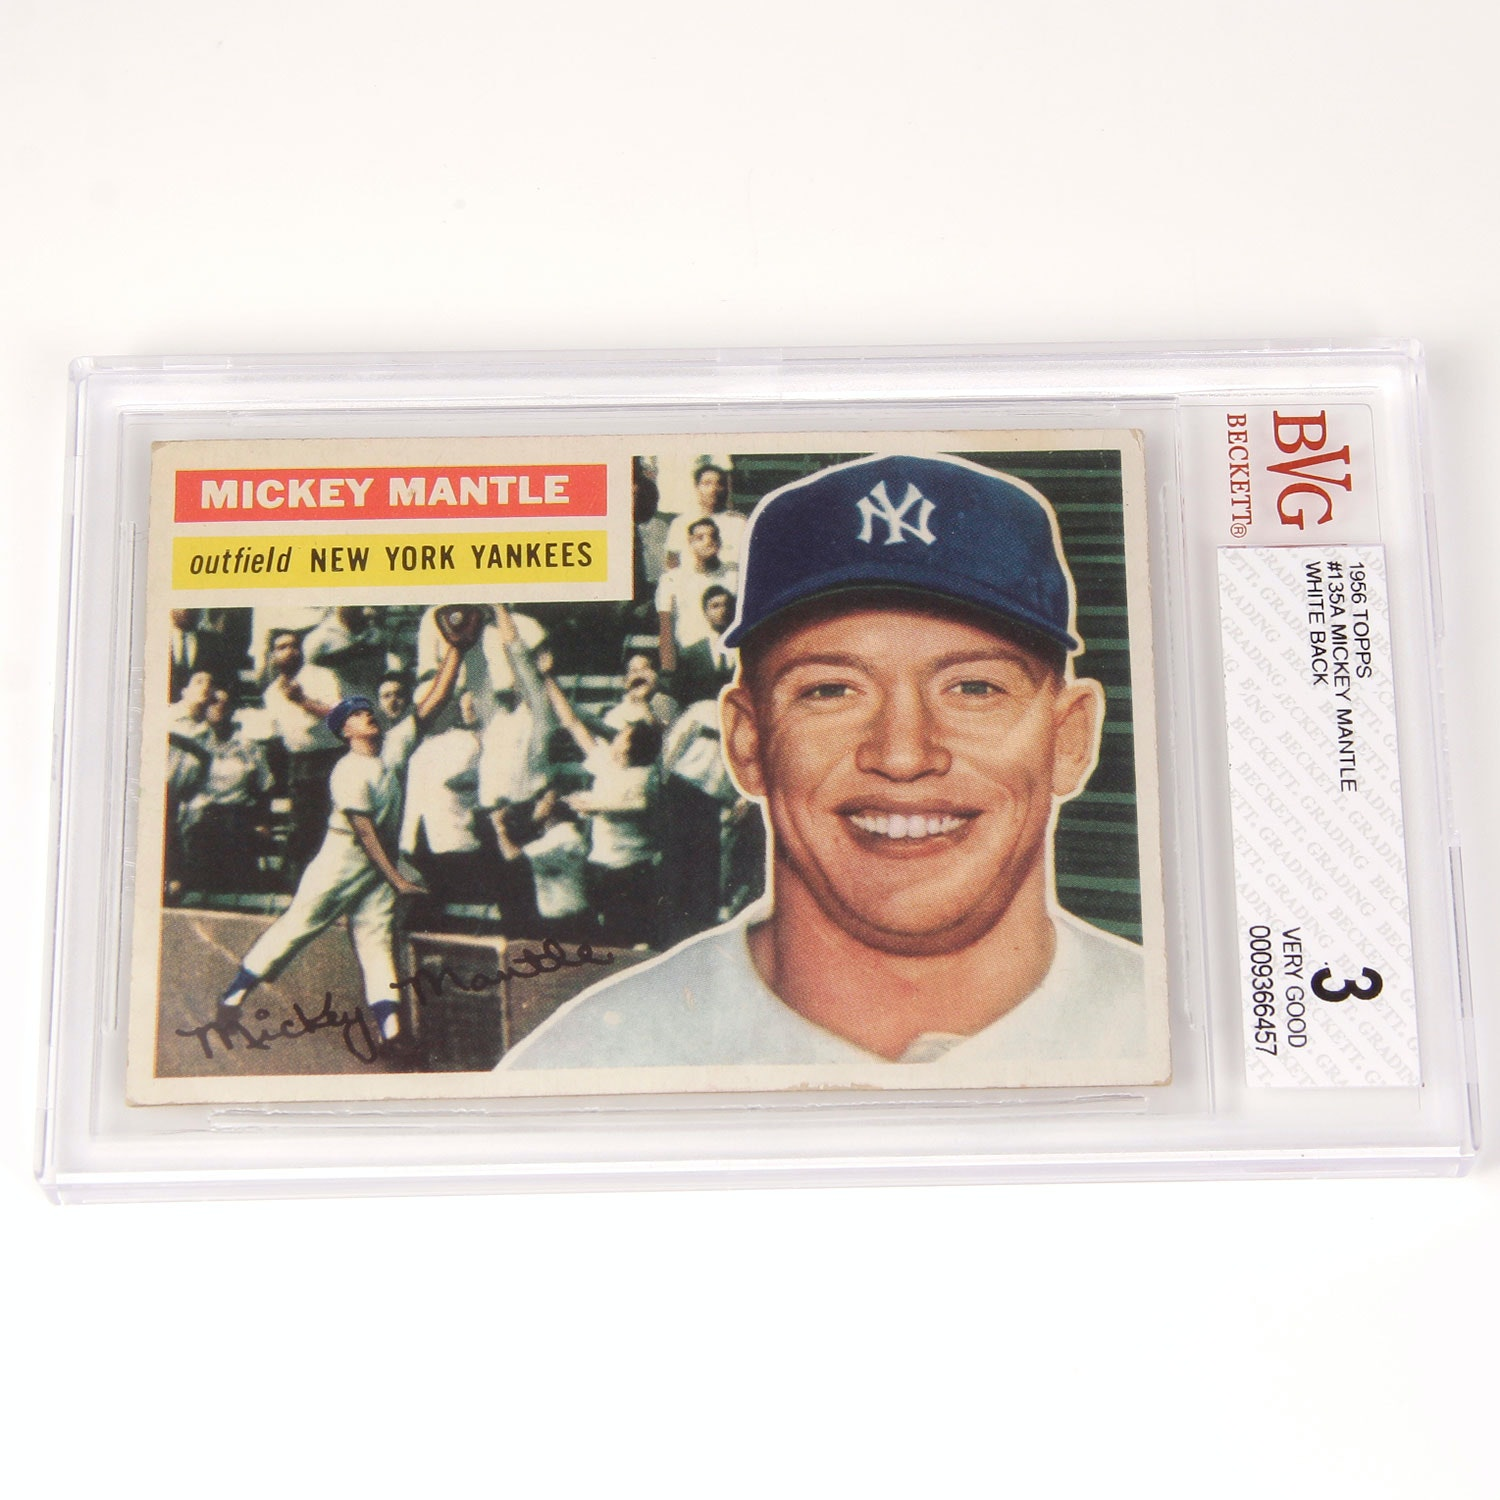 Hall of Famer Mickey Mantle Collectible Baseball Card - Beckett Graded 3